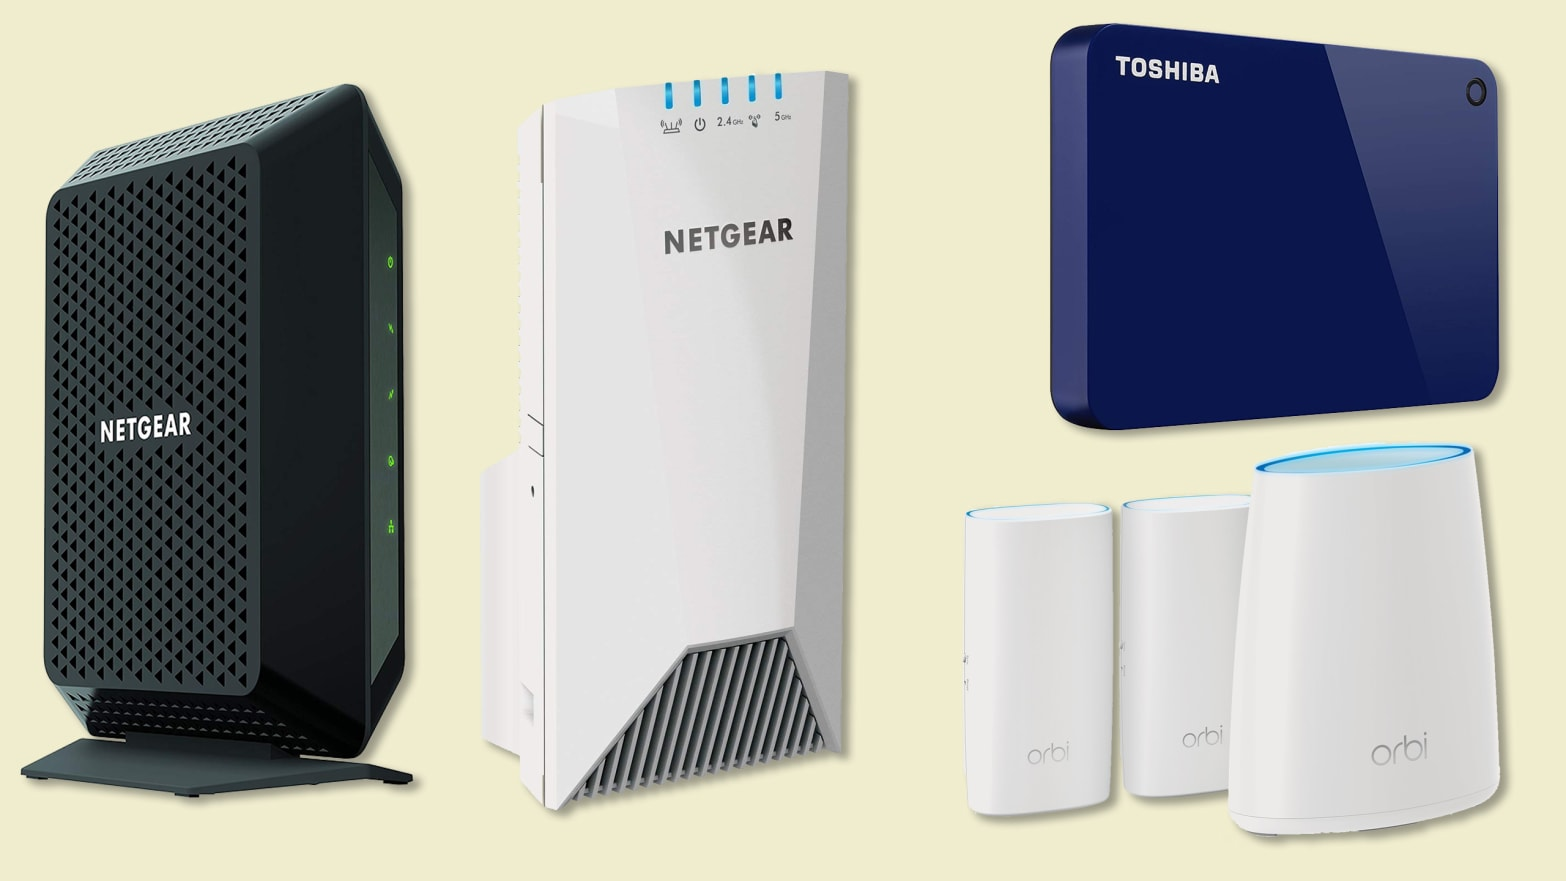 NETGEAR Home Internet Upgrades Are On Sale Today Only